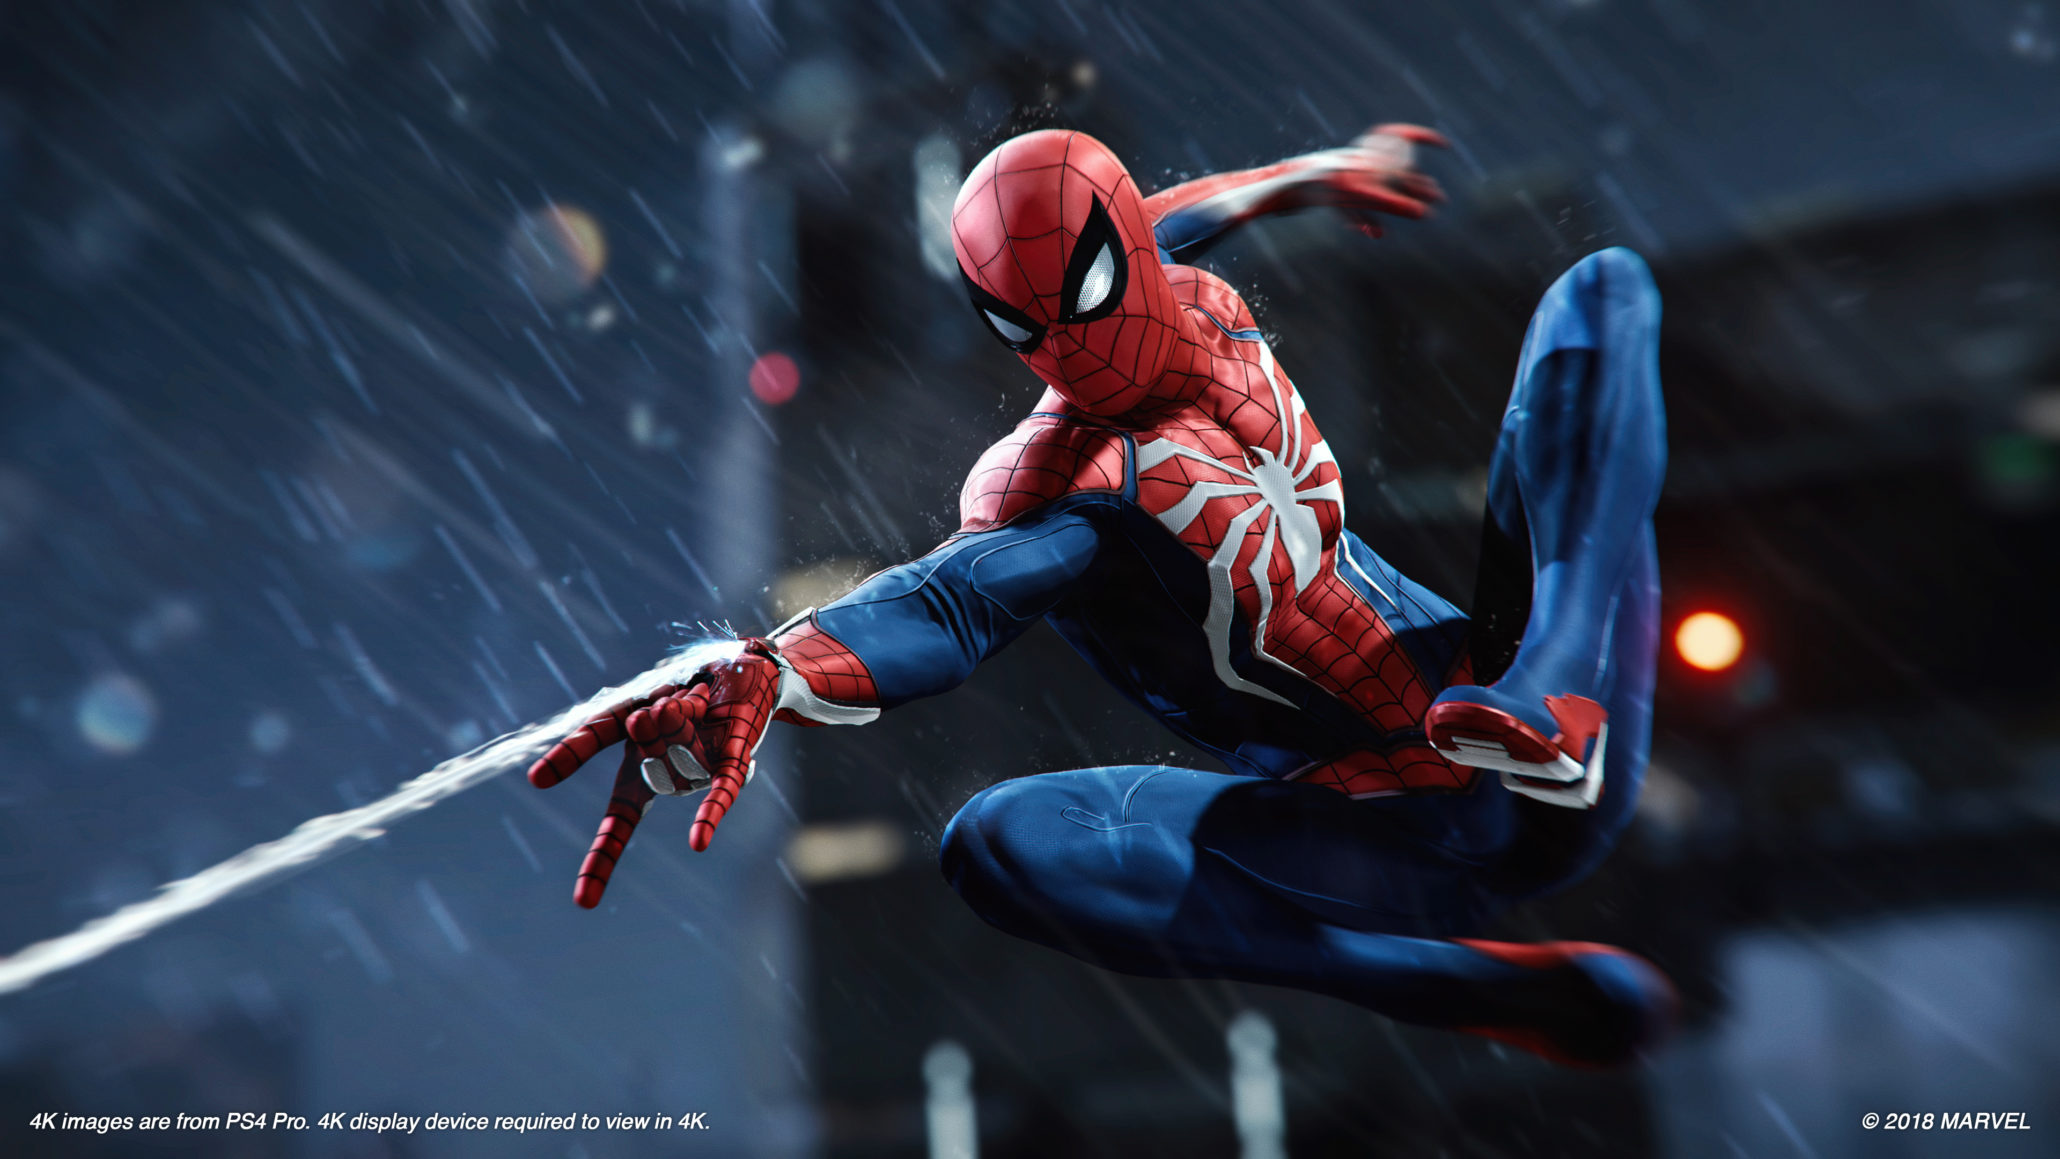 What are your favorite video game memories of Spider-Man screenshot